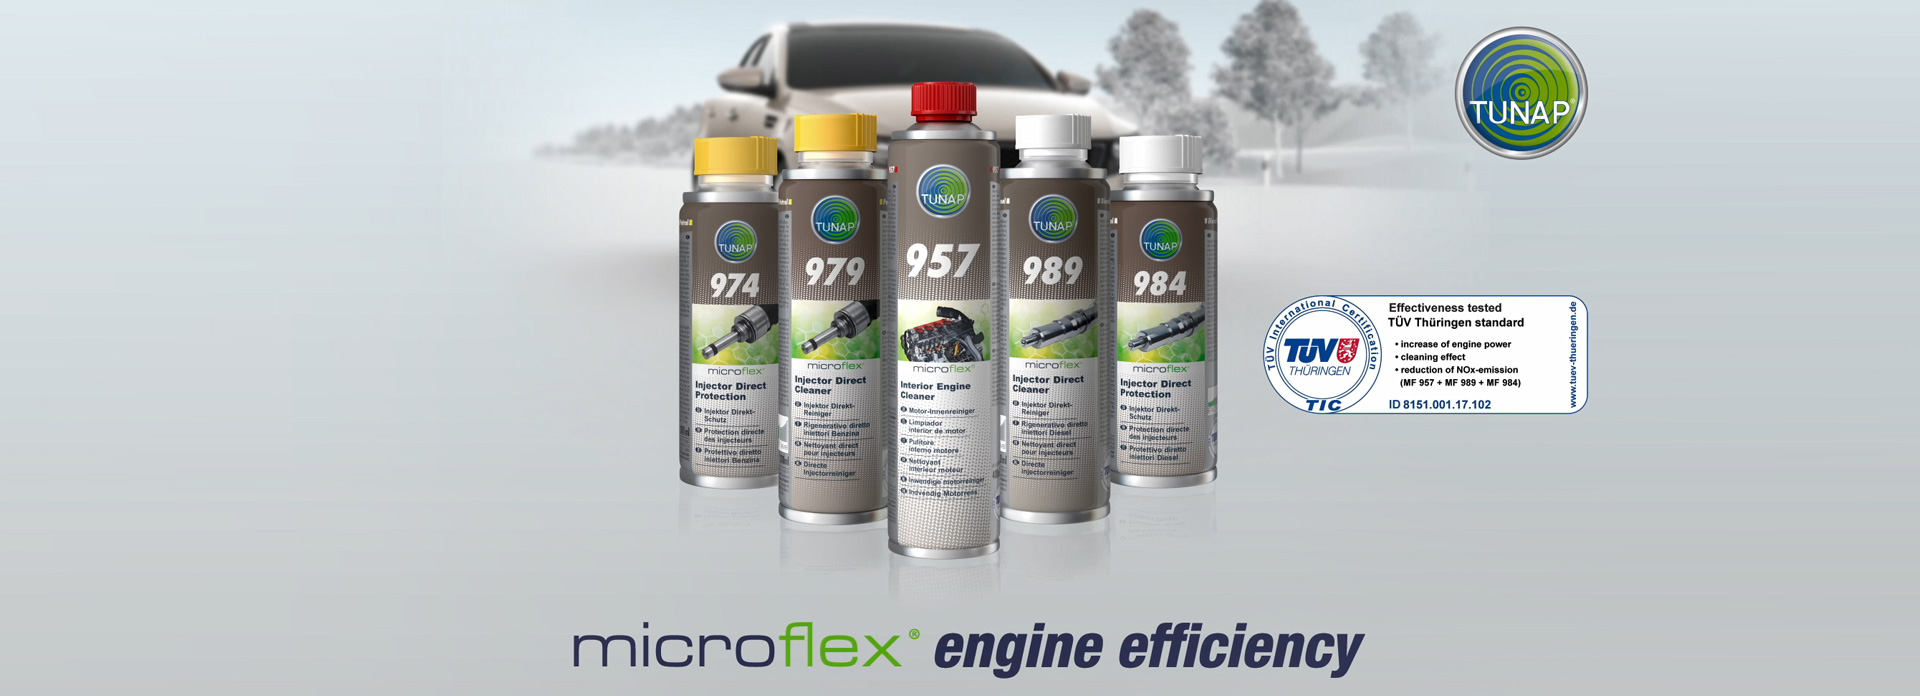 https://shop.jasmin-maziva.hr/Repository/Banners/largeBanners-microflex-engine-efficiency-122018.jpg